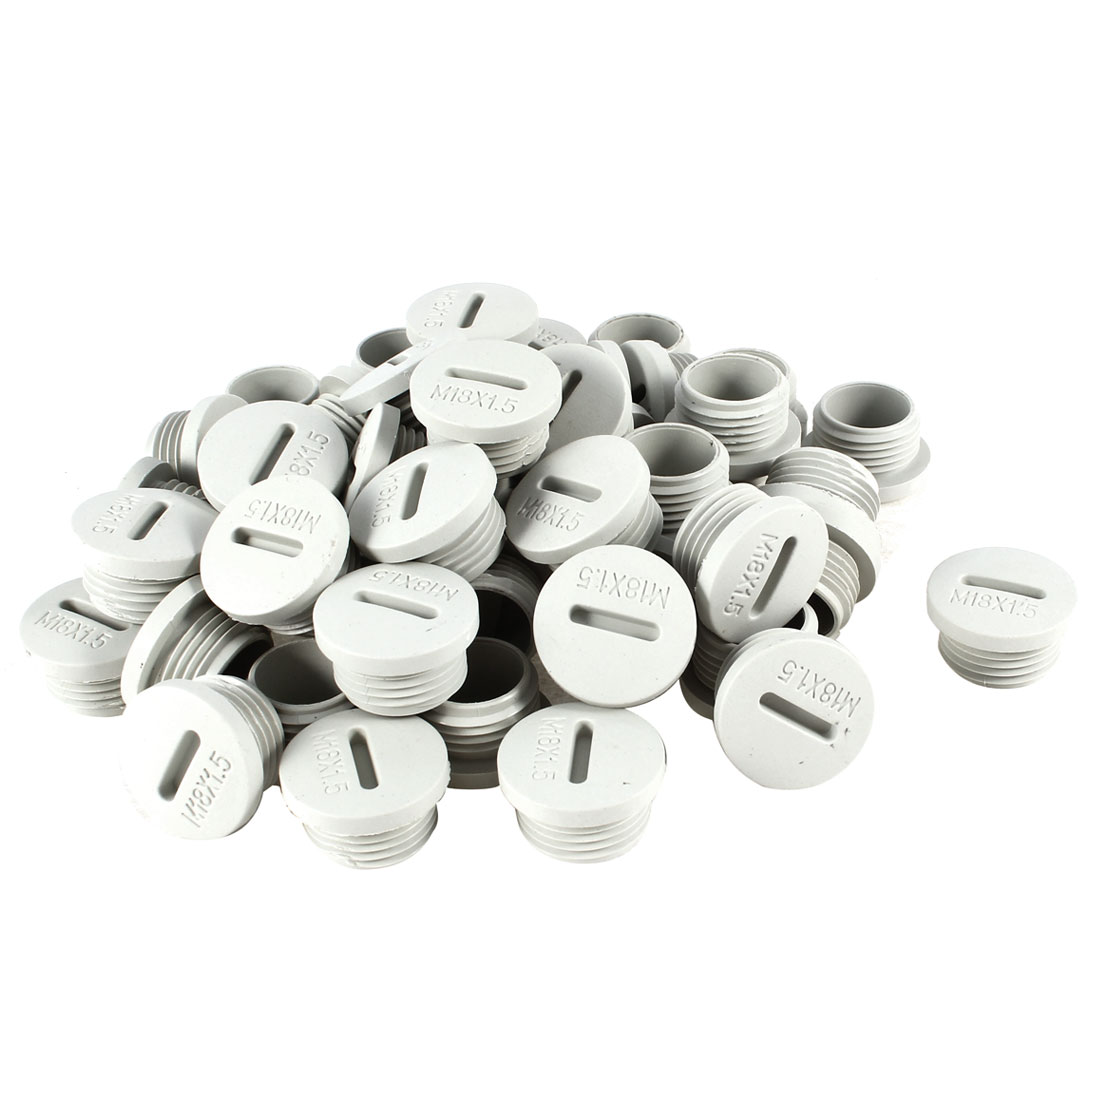 50 Pcs M18 18mm Diameter Round Gray Plastic Furniture Chair Table Legs Blanking End Cap Tubing Tube Insert